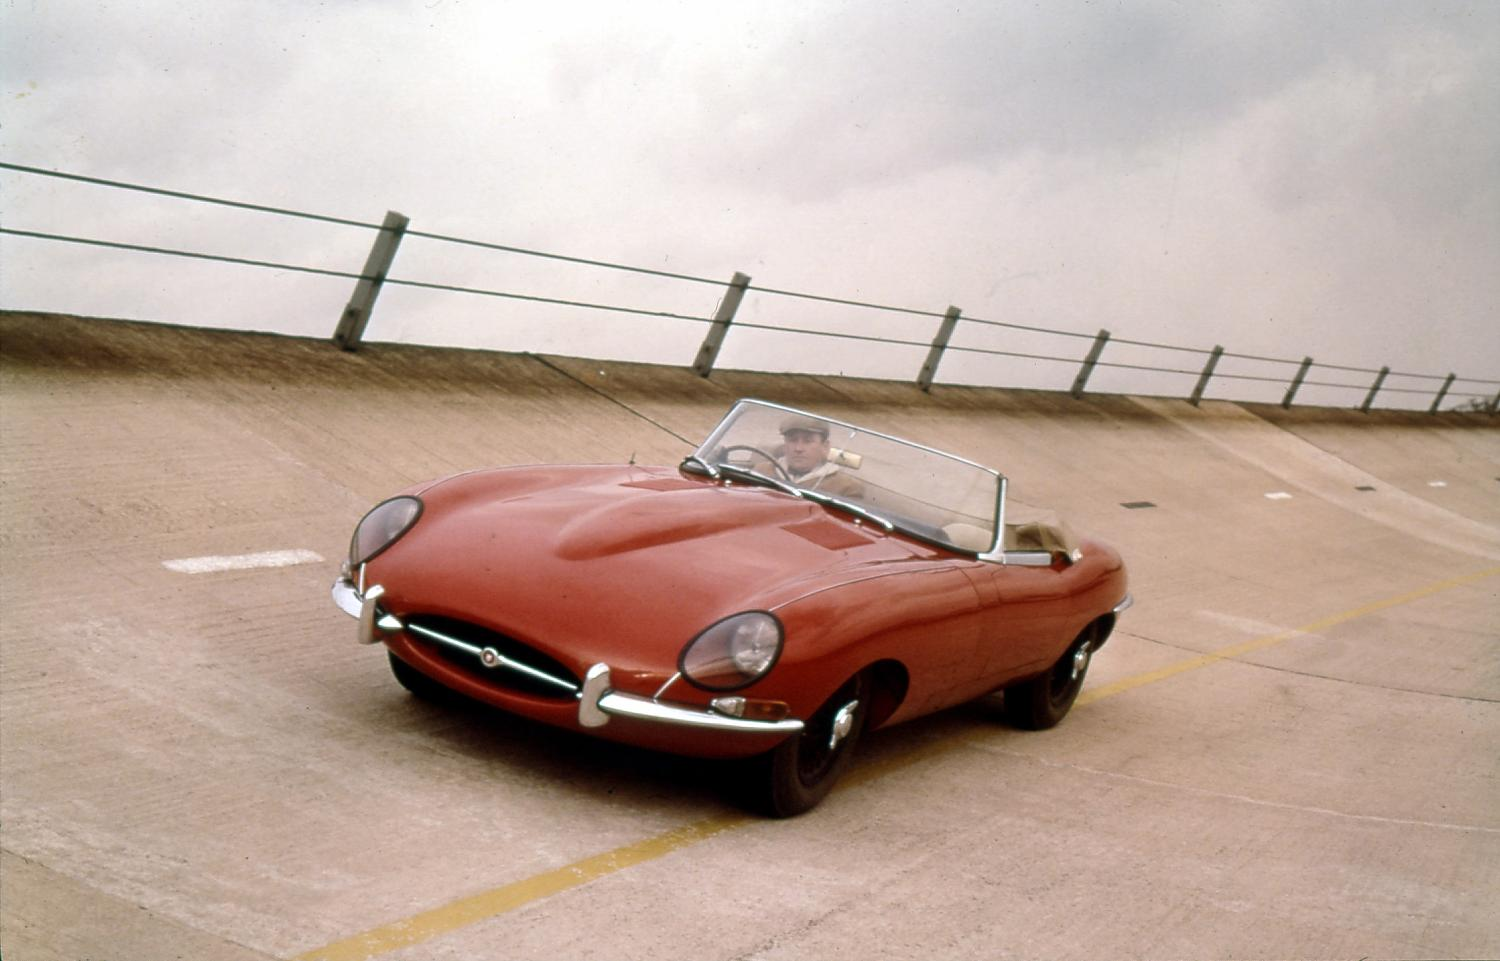 Norman Dewis developed many seminal Jaguar road cars; here he is in 1960 with the legendary E-type